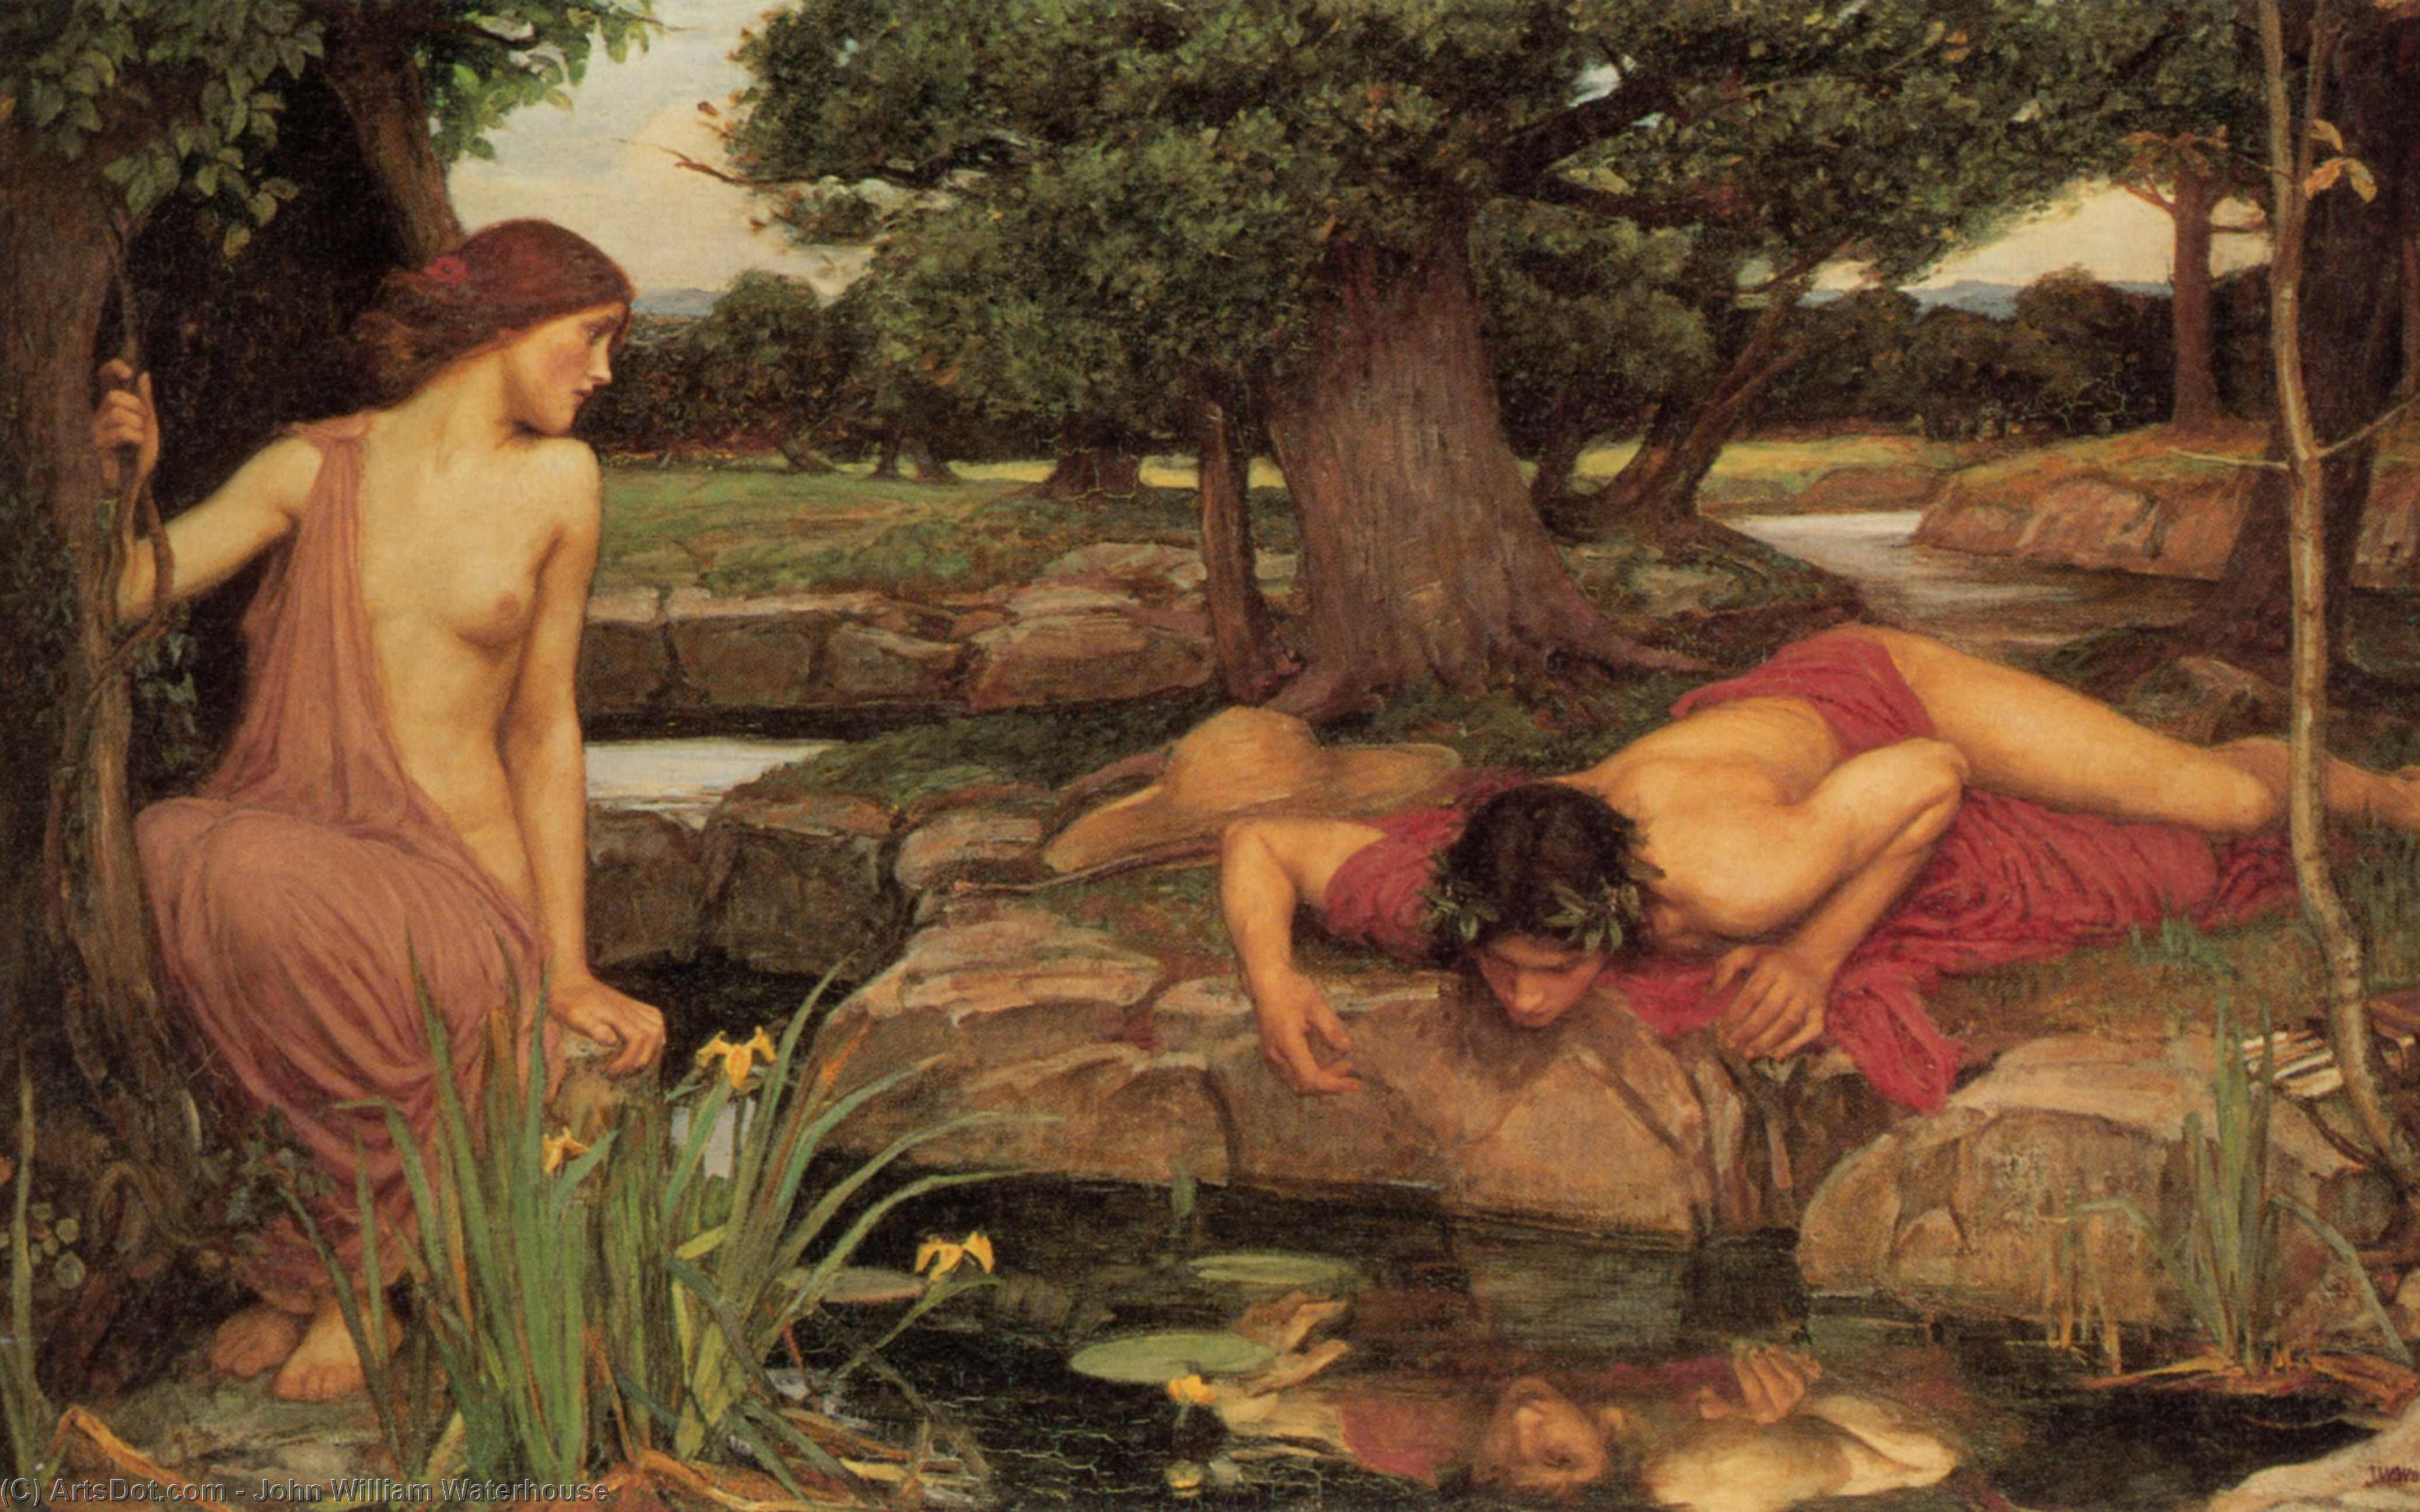 eco e narciso, 1903 di John William Waterhouse (1849-1917, Italy) | Riproduzioni D'arte Del Museo John William Waterhouse | ArtsDot.com